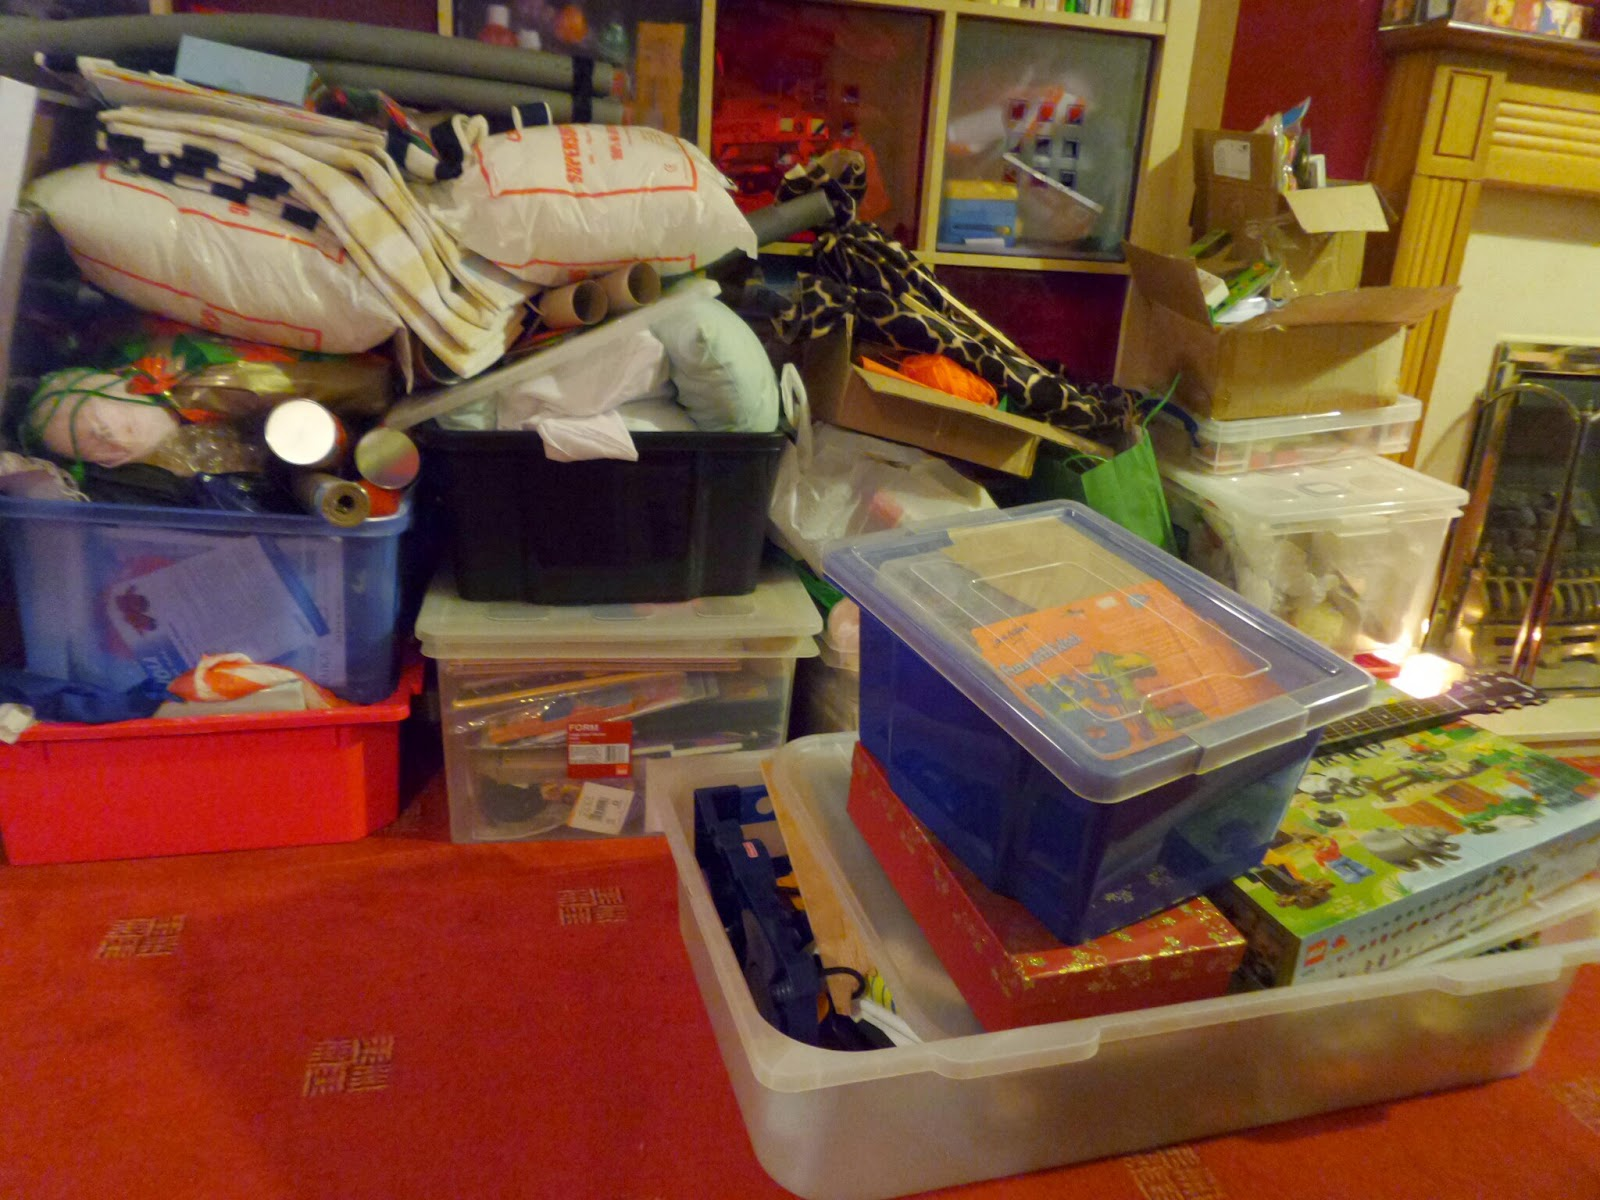 Pippa's stacks of Craft Boxes and Craft items